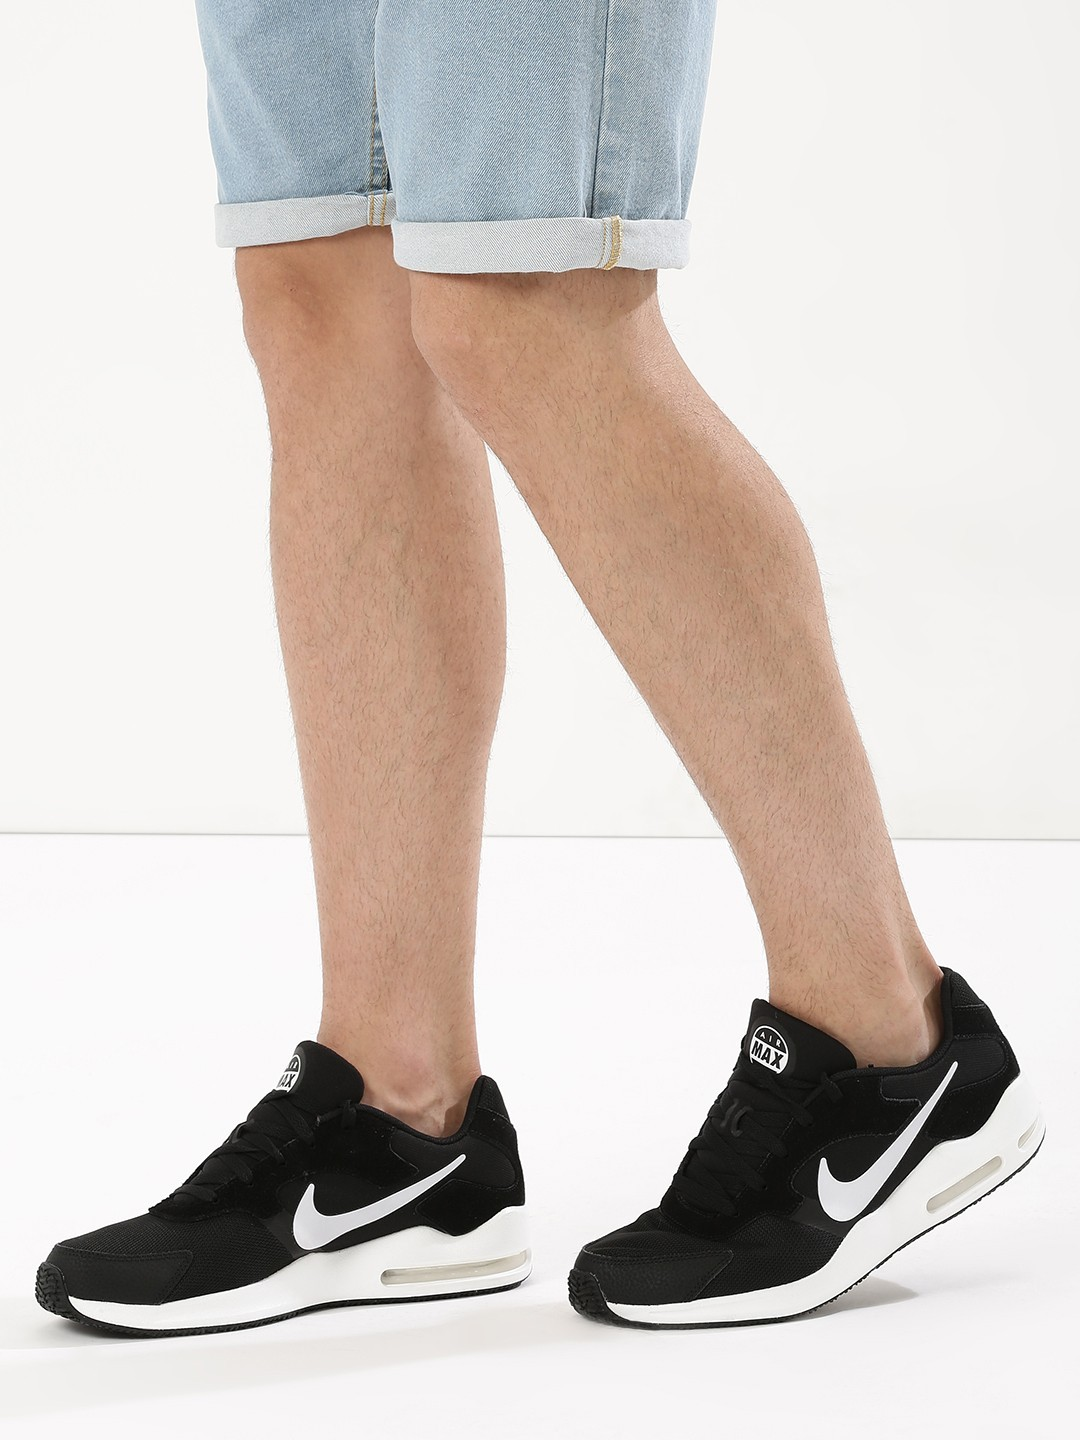 skate shoes shop innovative design Buy Nike Black/White Air Max Guile Trainers for Men Online ...